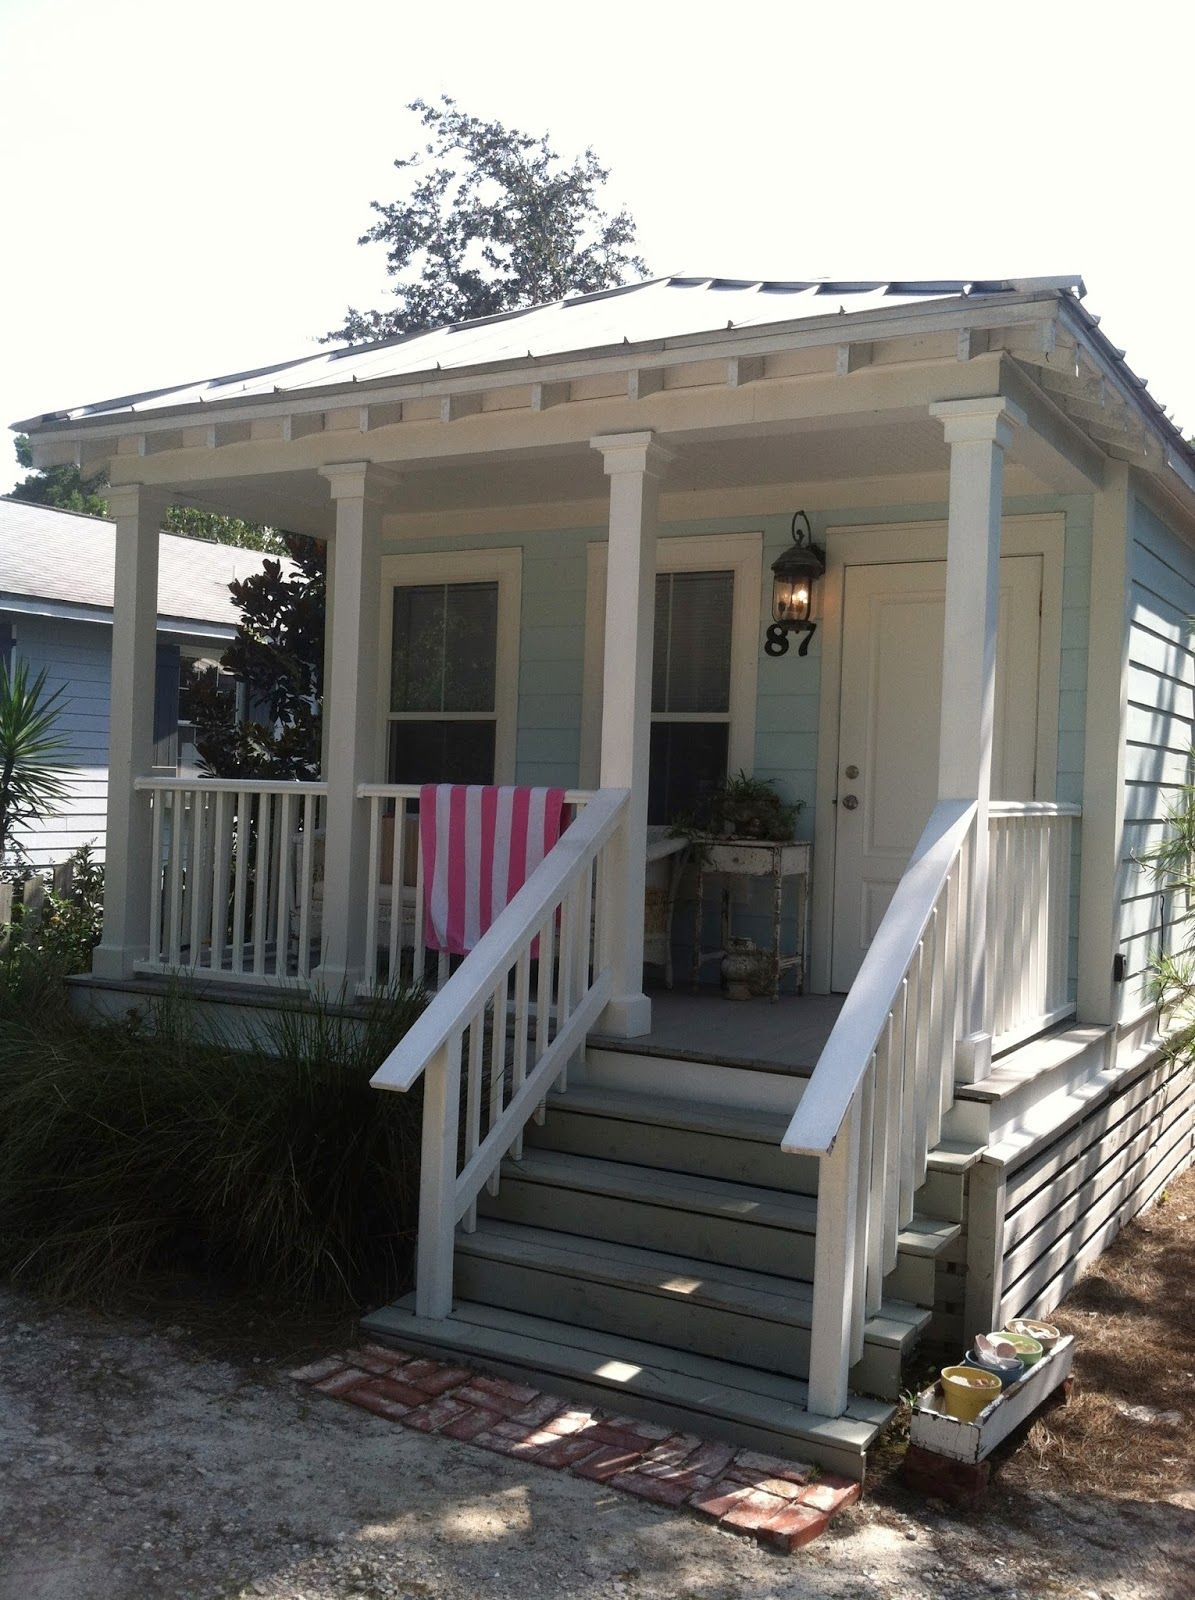 Tiny houses on the beach in florida - A Vintage Beach Cottage In Seagrove Florida